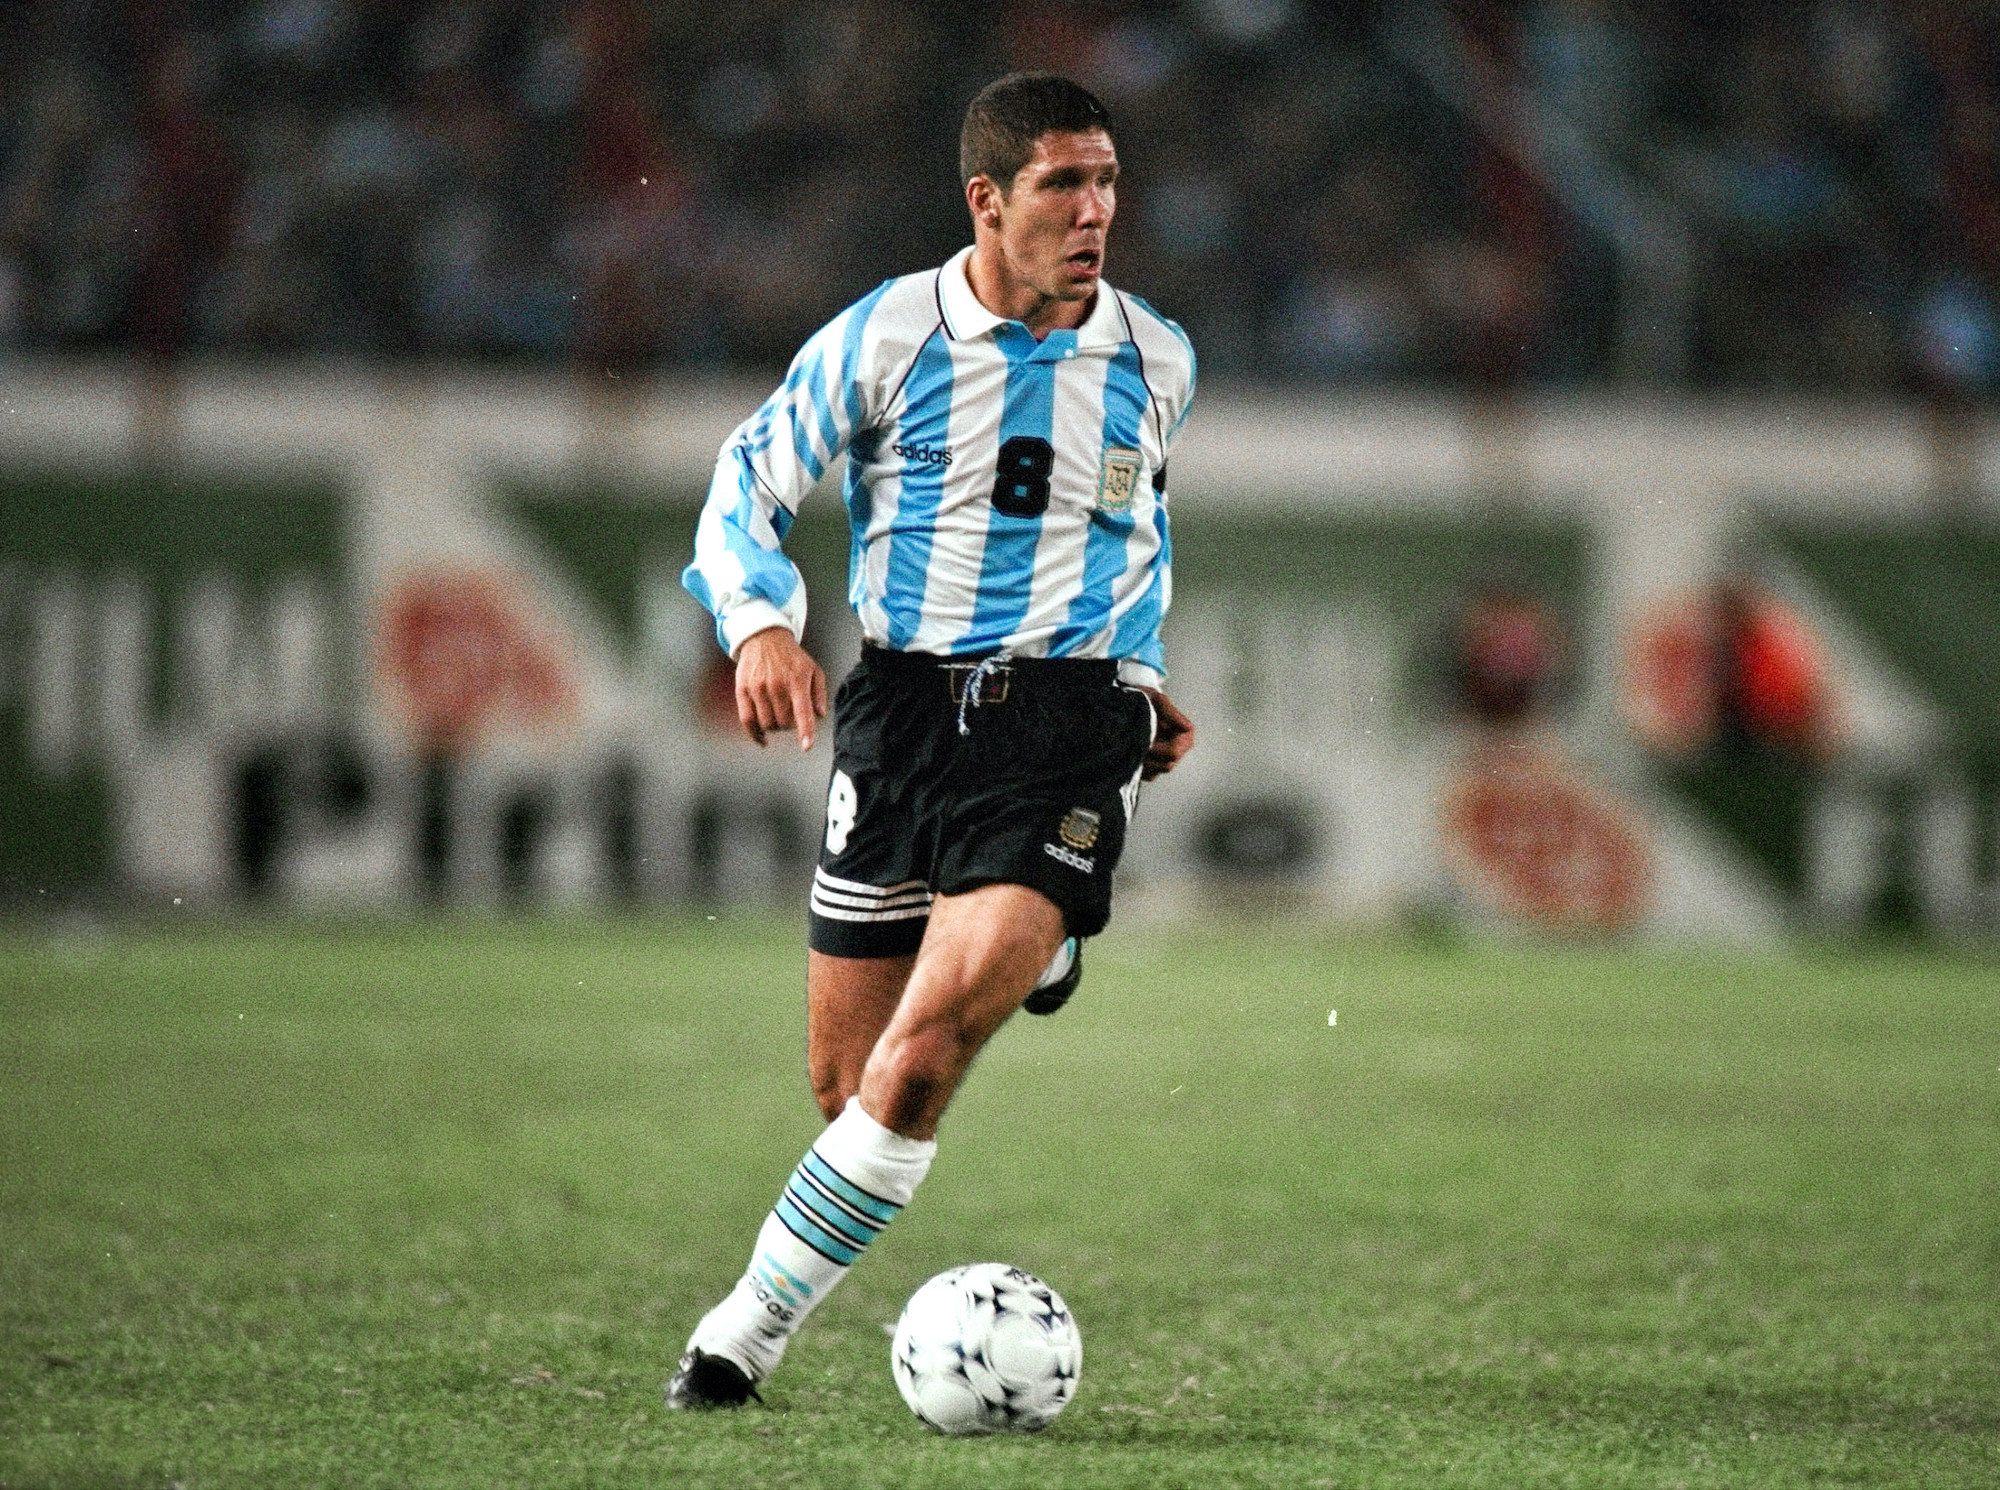 Diego Simeone: the midfield monster before the manager